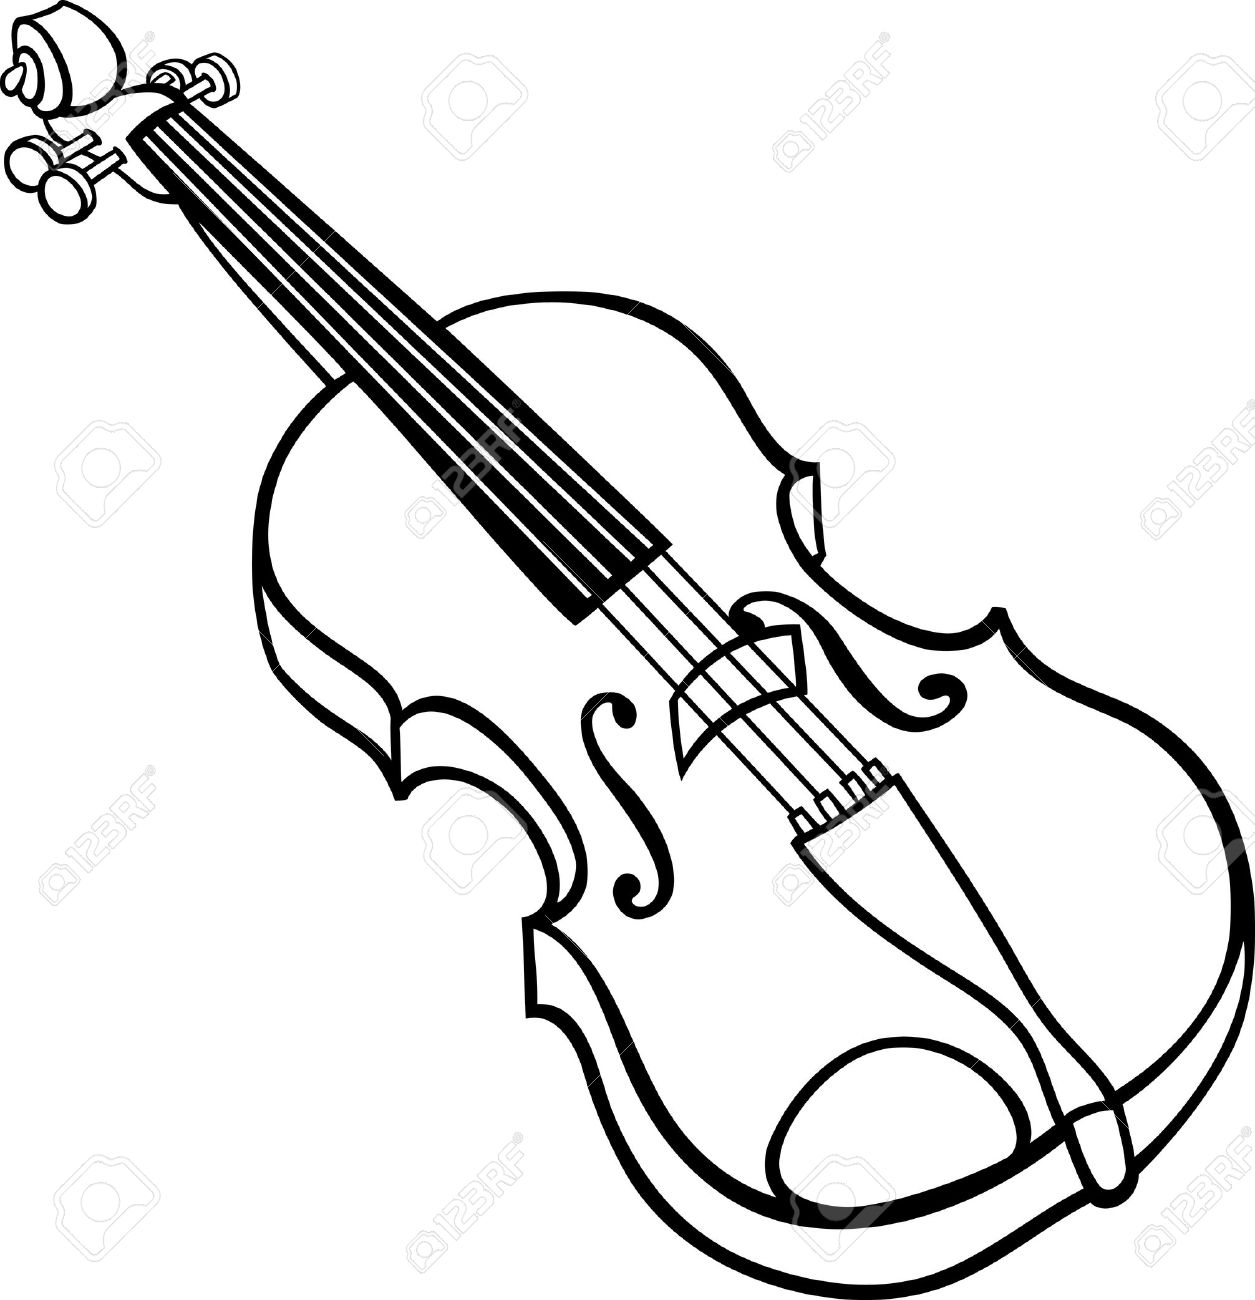 Black And White Cartoon Illustration Of Violin Musical Instrument Clip Art For Coloring Book